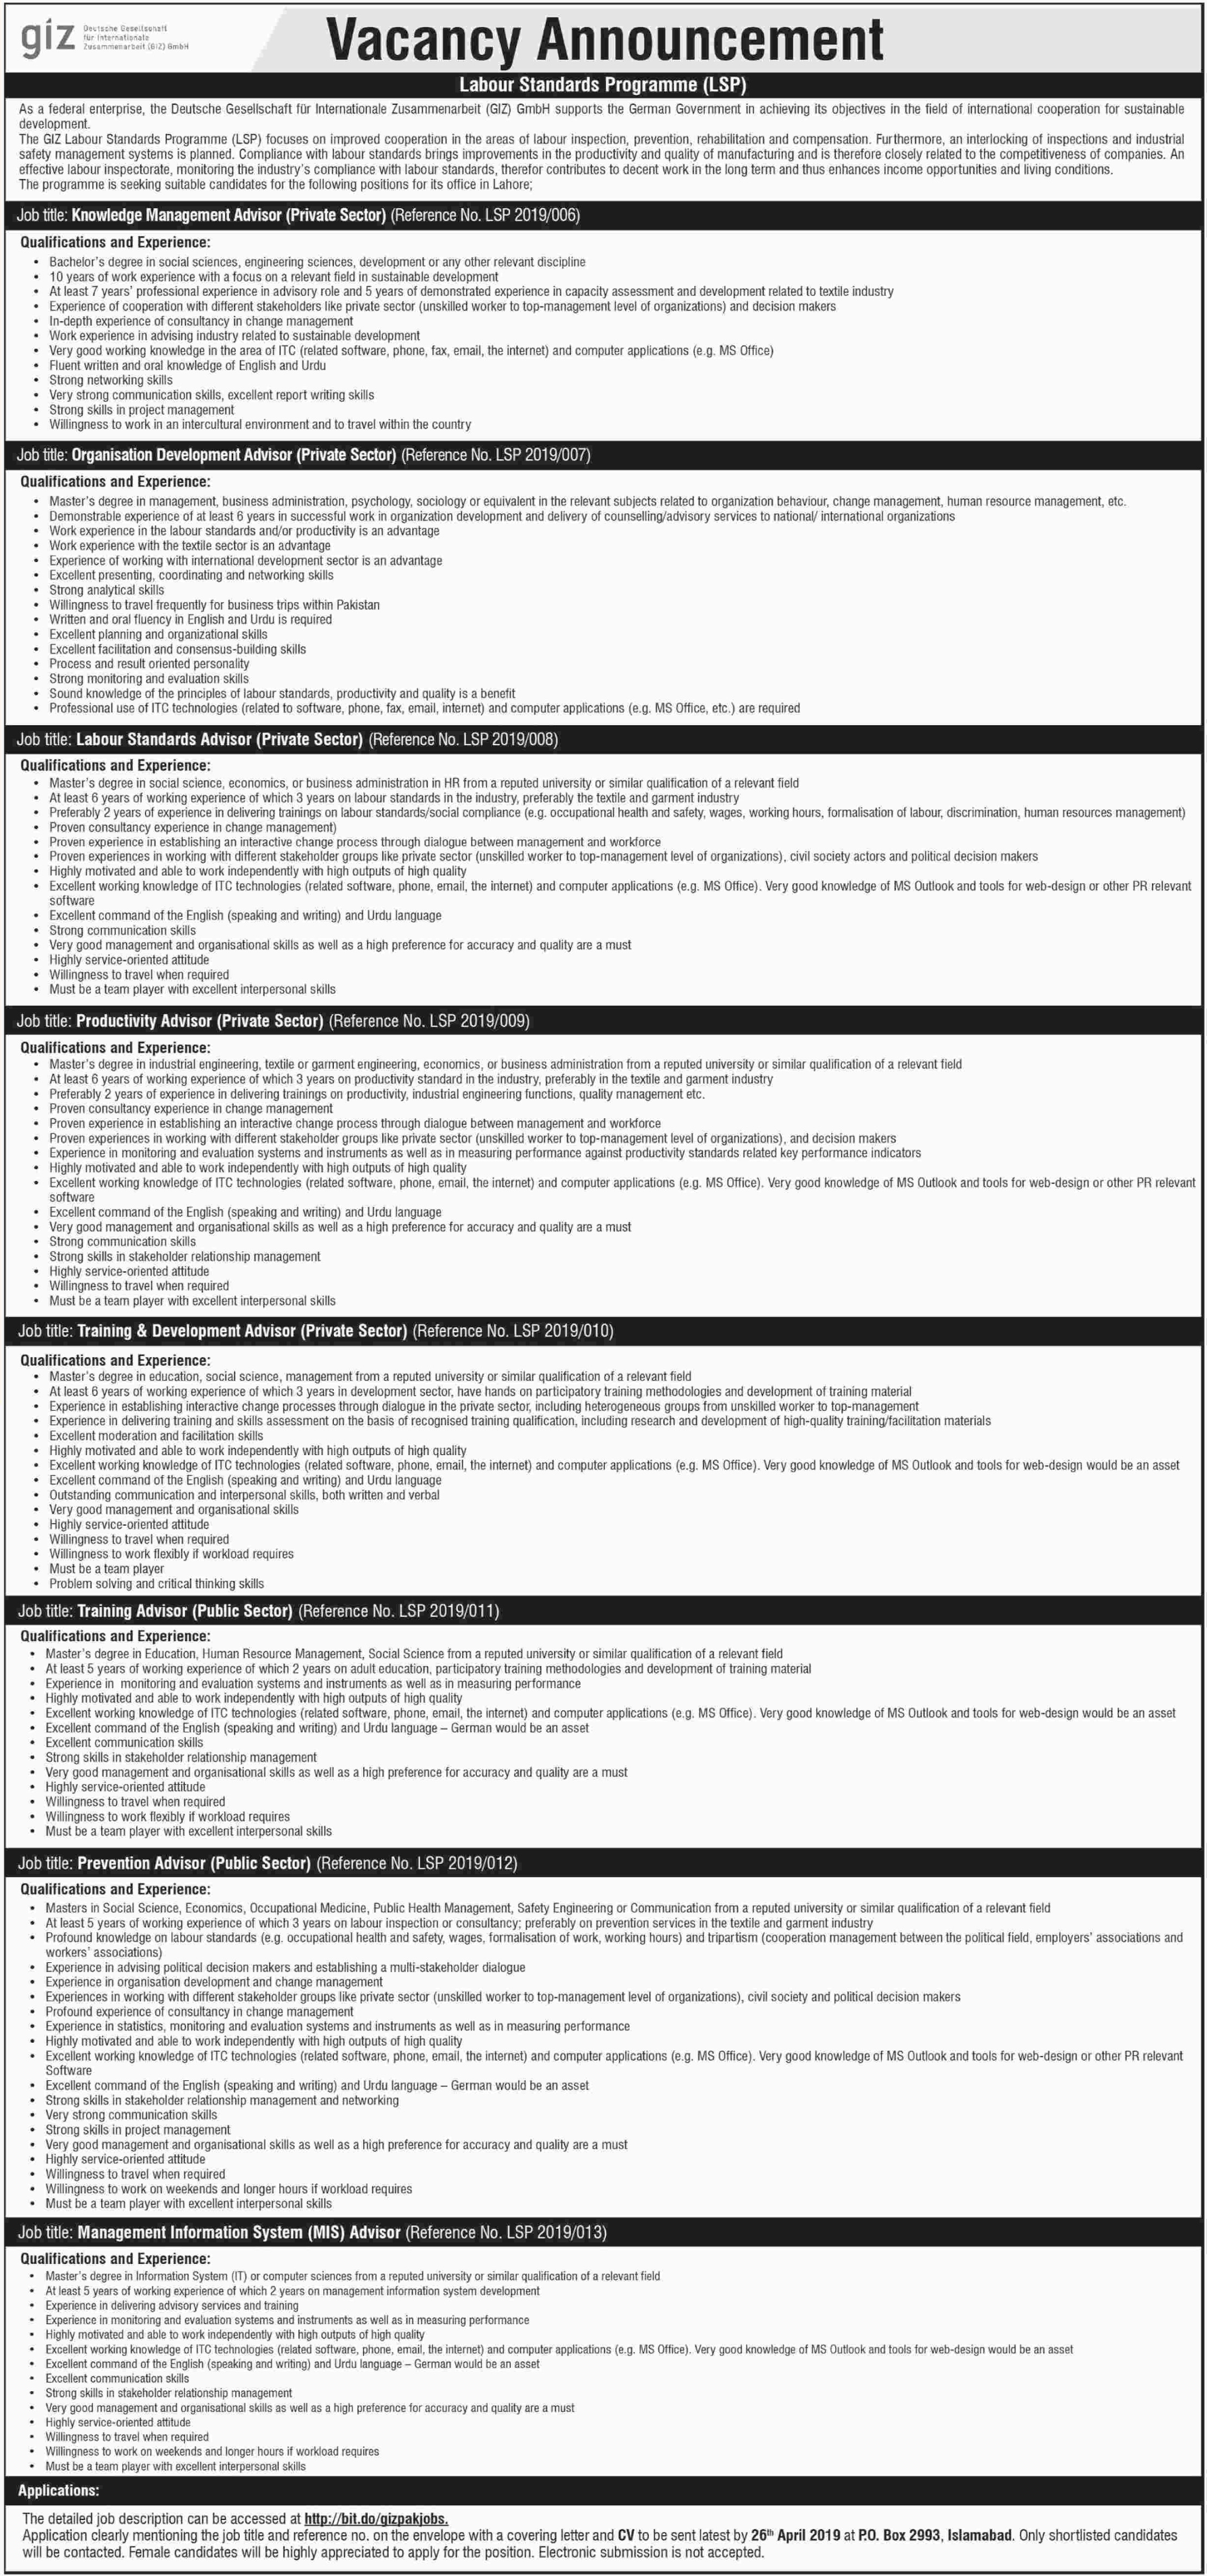 GIZ Pakistan Jobs 2019 P.O.Box 2993 Islamabad Latest